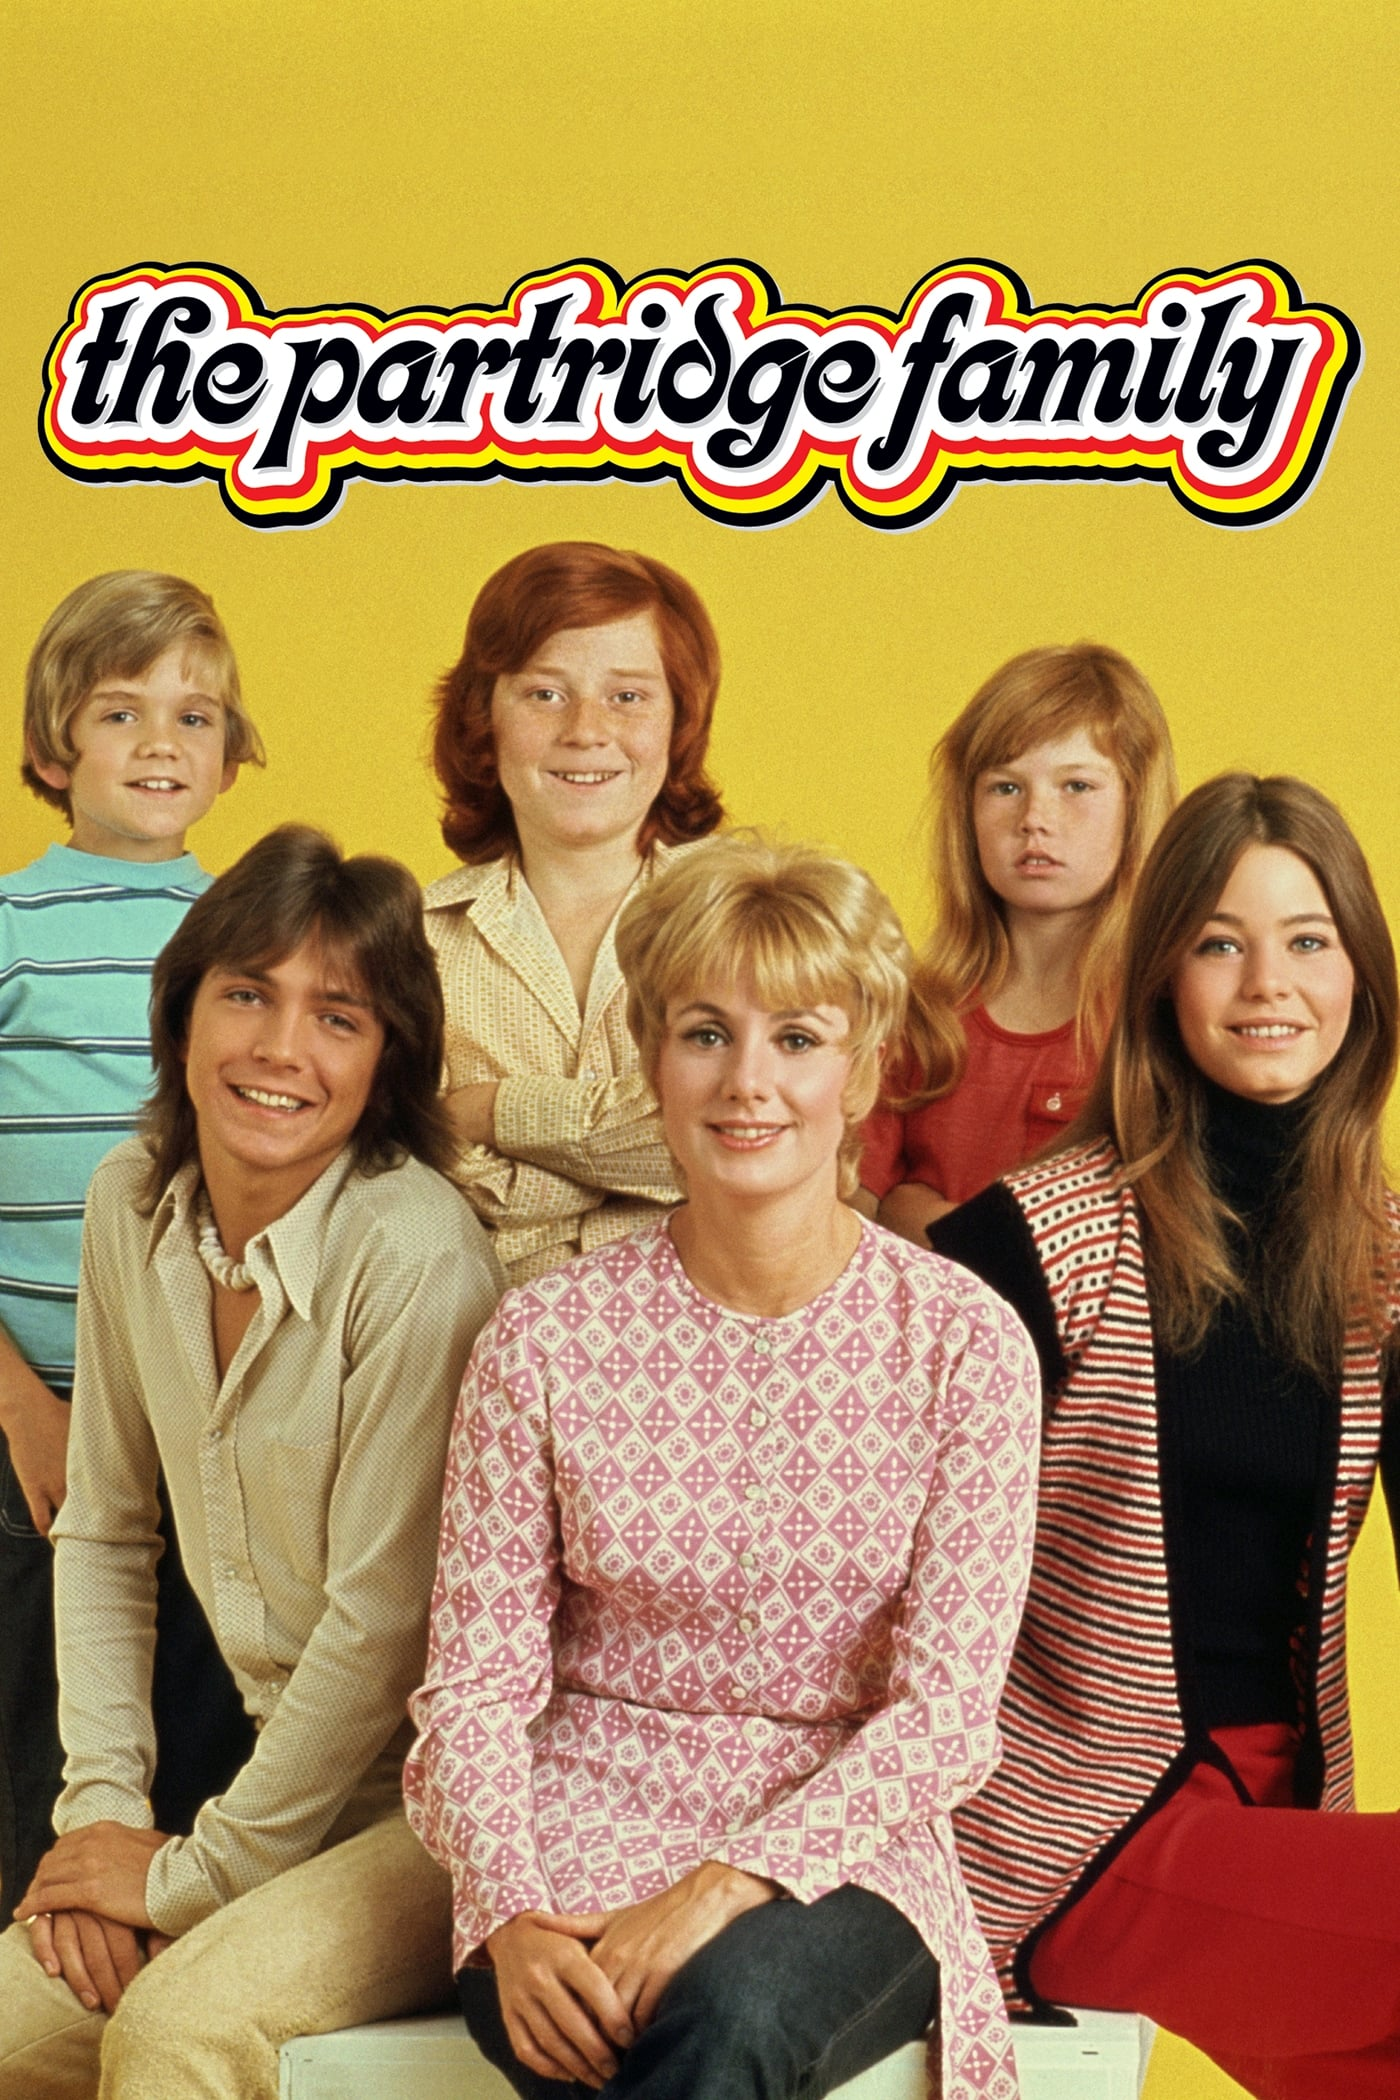 The Partridge Family on FREECABLE TV